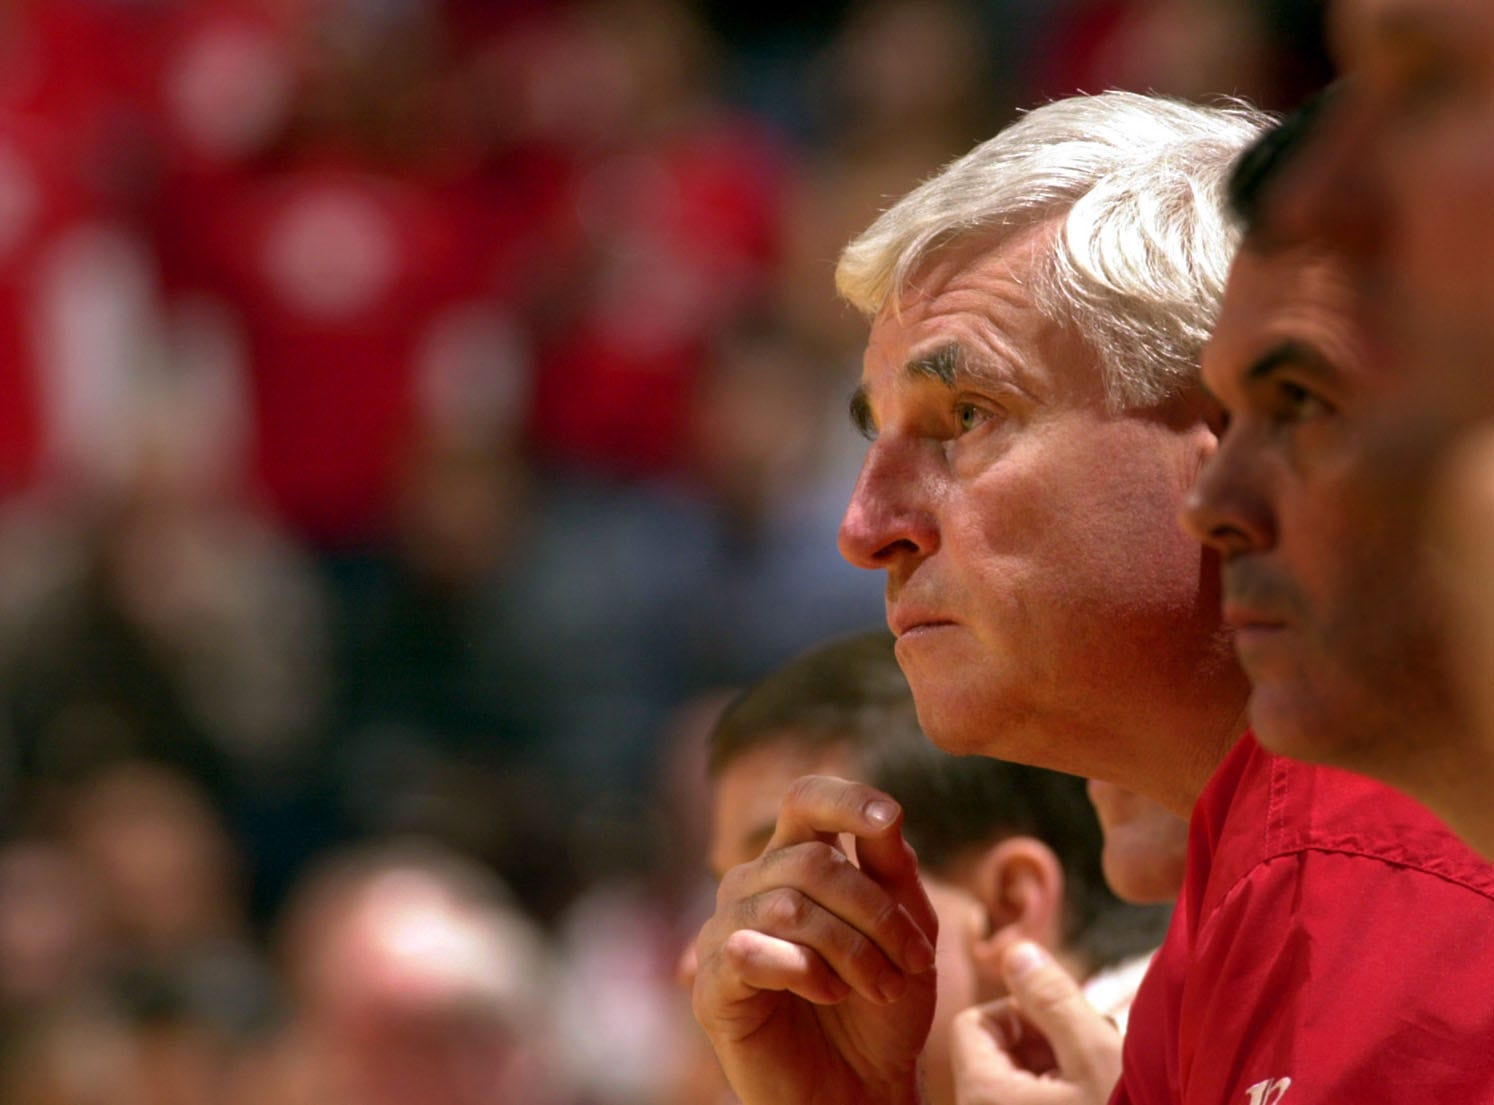 Bob Knight makes first public appearance at Indiana University since 2000 farewell speech